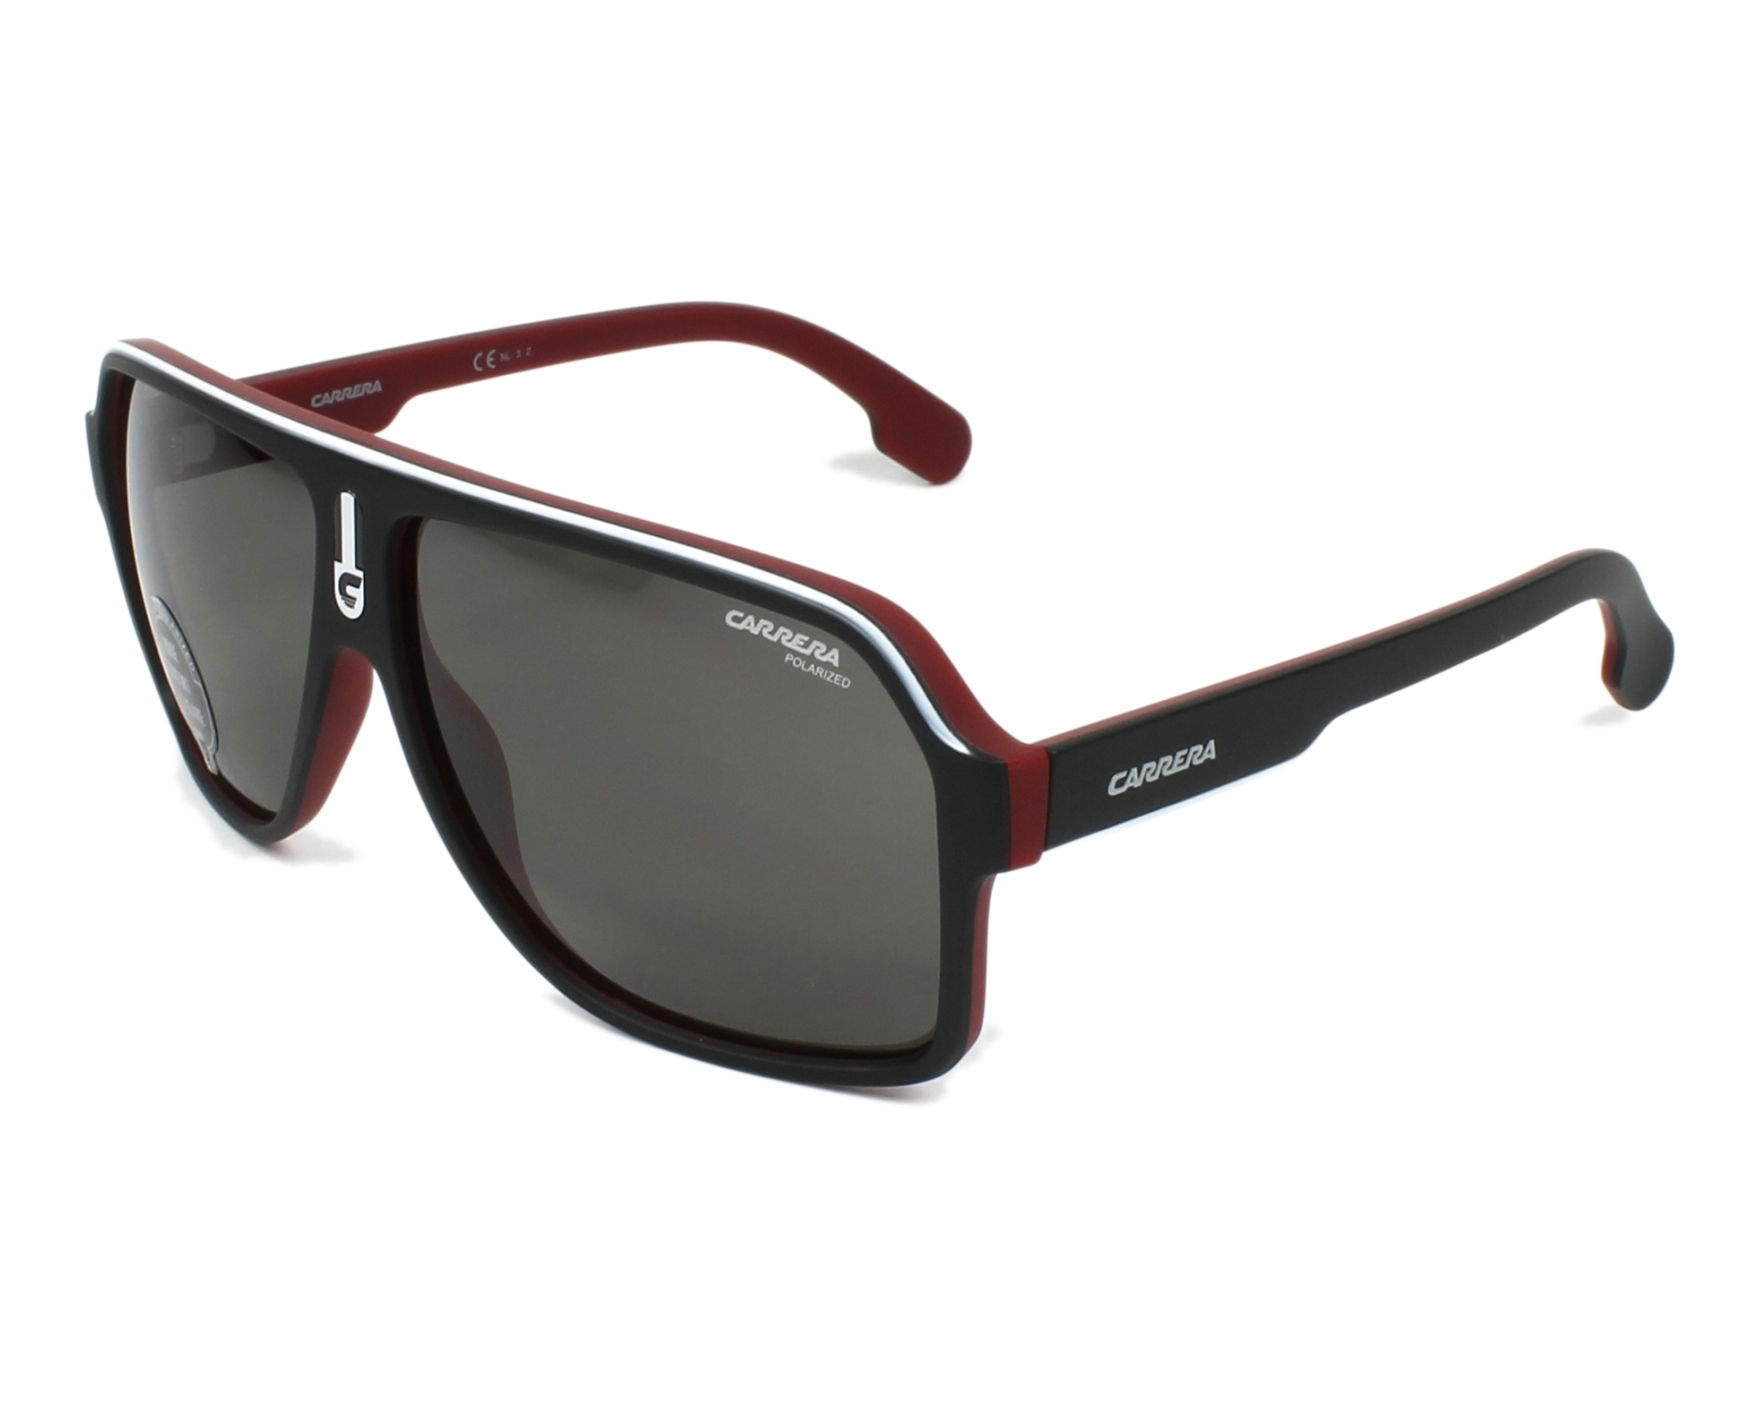 Sunglasses Carrera 1001-S BLX M9 62-11 Black Bordeaux profile view cd080a5d1bfb